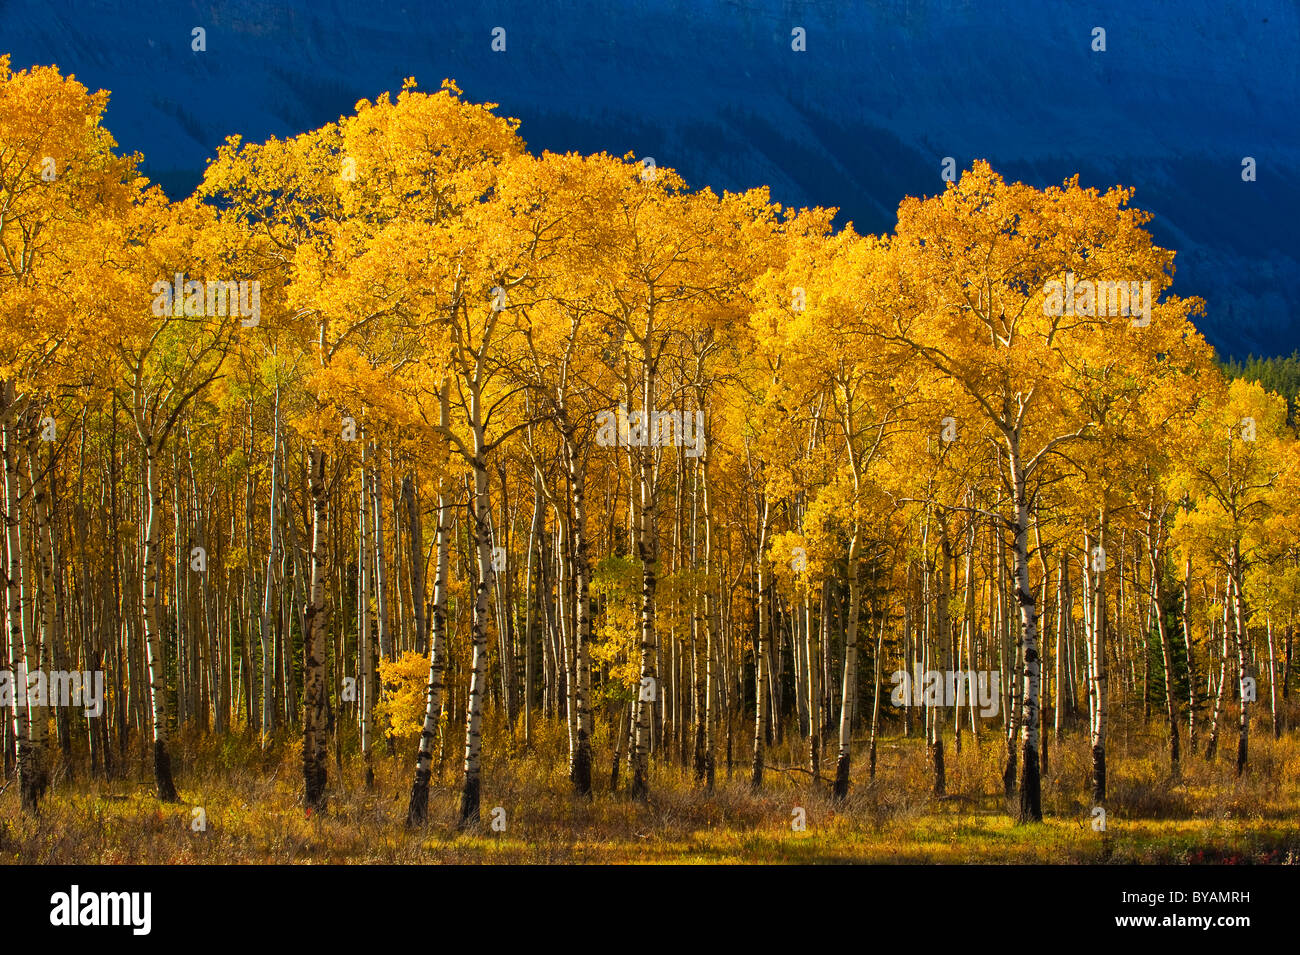 A stand of aspen trees with leaves turned the golden yellow of autumn - Stock Image